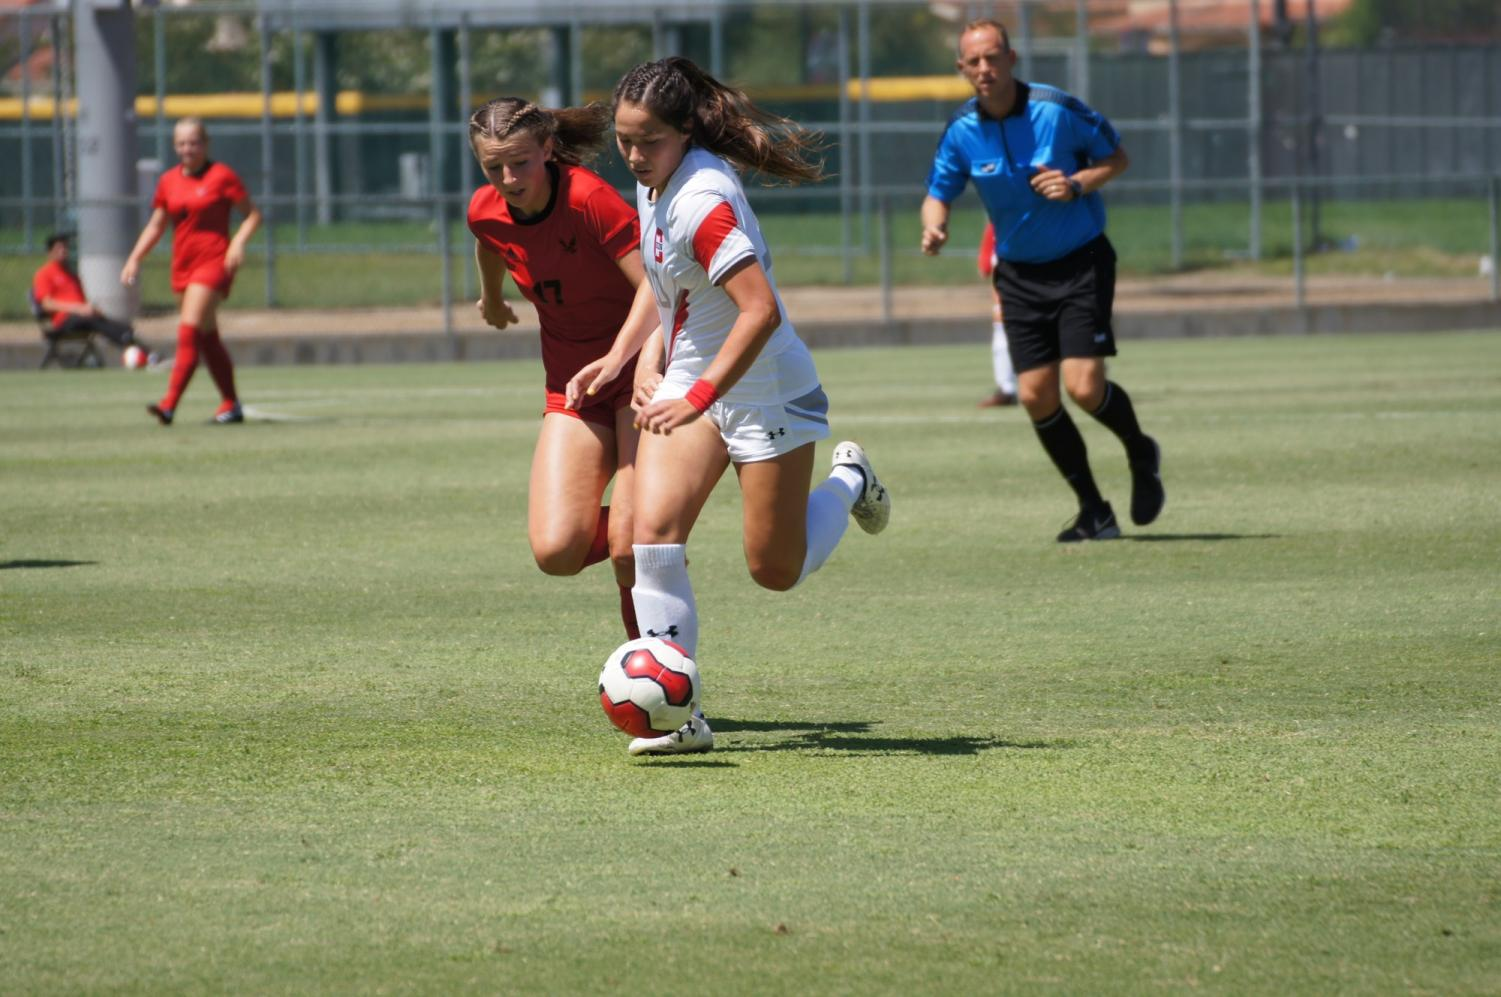 Freshman midfielder Cindy Arteaga moves the ball towards the Eagles' goal in an effort to score the second goal of the match on Sept. 8. Arteaga had six shots during the match, two of which were on goal. Photo credit: Bryanna Winner